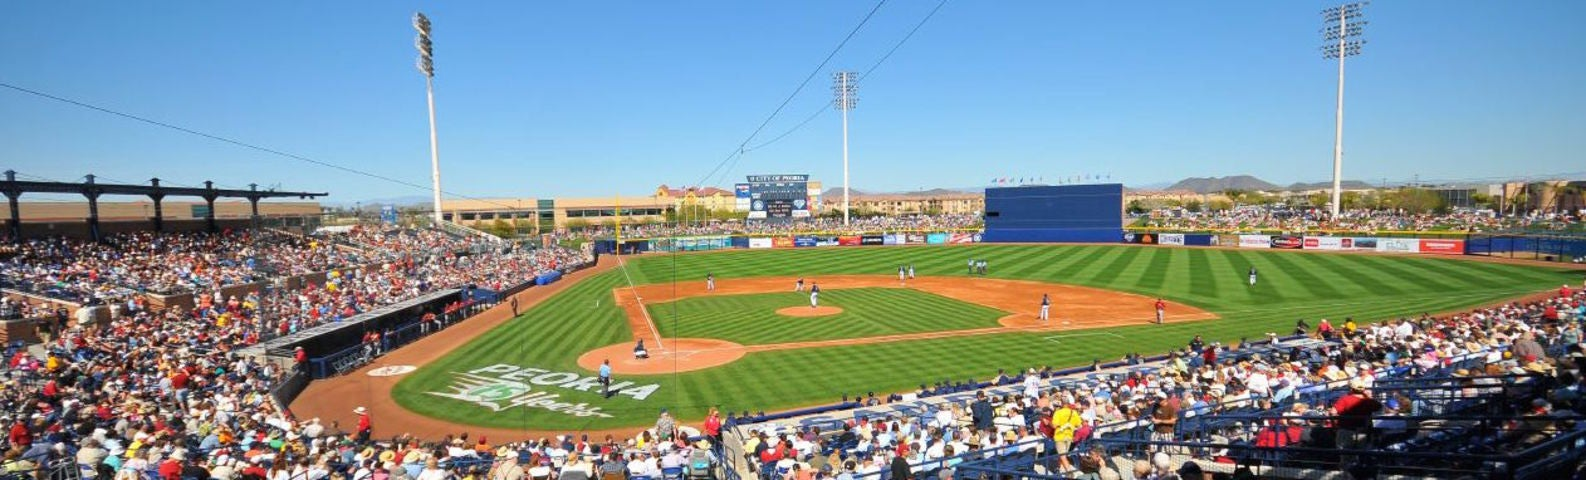 Padres - Spring Training Tickets